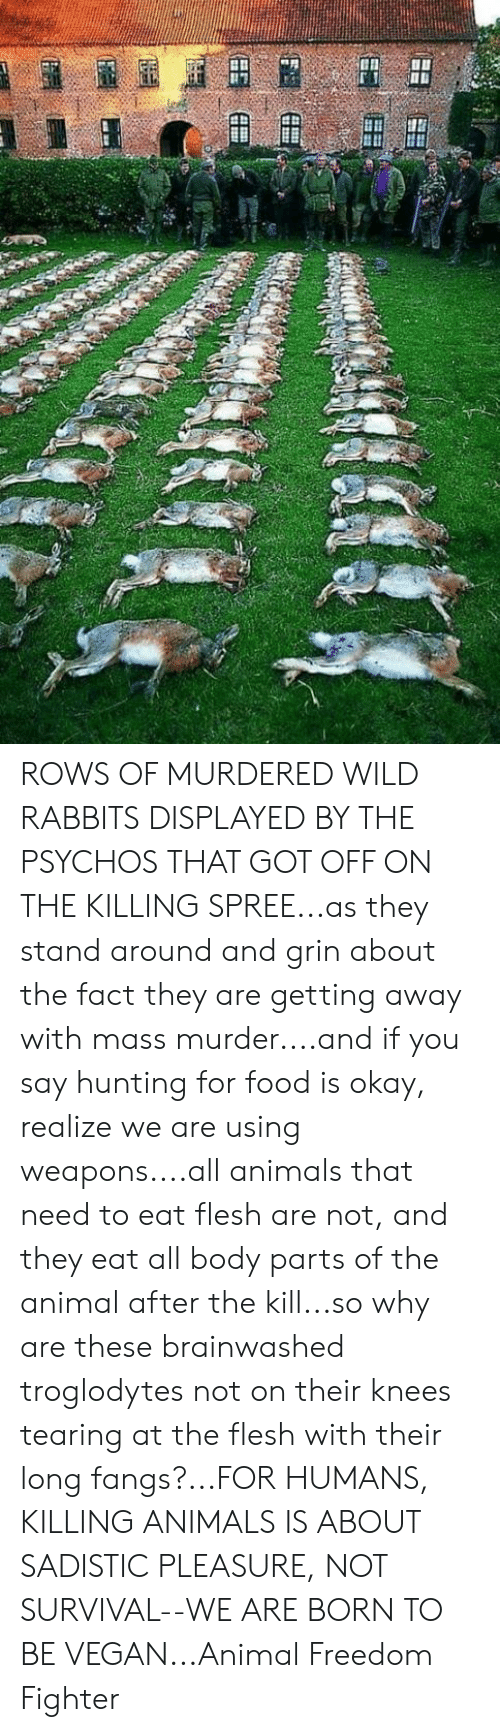 Animals, Food, and Memes: ROWS OF MURDERED WILD RABBITS DISPLAYED BY THE PSYCHOS THAT GOT OFF ON THE KILLING SPREE...as they stand around and grin about the fact they are getting away with mass murder....and if you say hunting for food is okay, realize we are using weapons....all animals that need to eat flesh are not, and they eat all body parts of the animal after the kill...so why are these brainwashed troglodytes not on their knees tearing at the flesh with their long fangs?...FOR HUMANS, KILLING ANIMALS IS ABOUT SADISTIC PLEASURE, NOT SURVIVAL--WE ARE BORN TO BE VEGAN...Animal Freedom Fighter